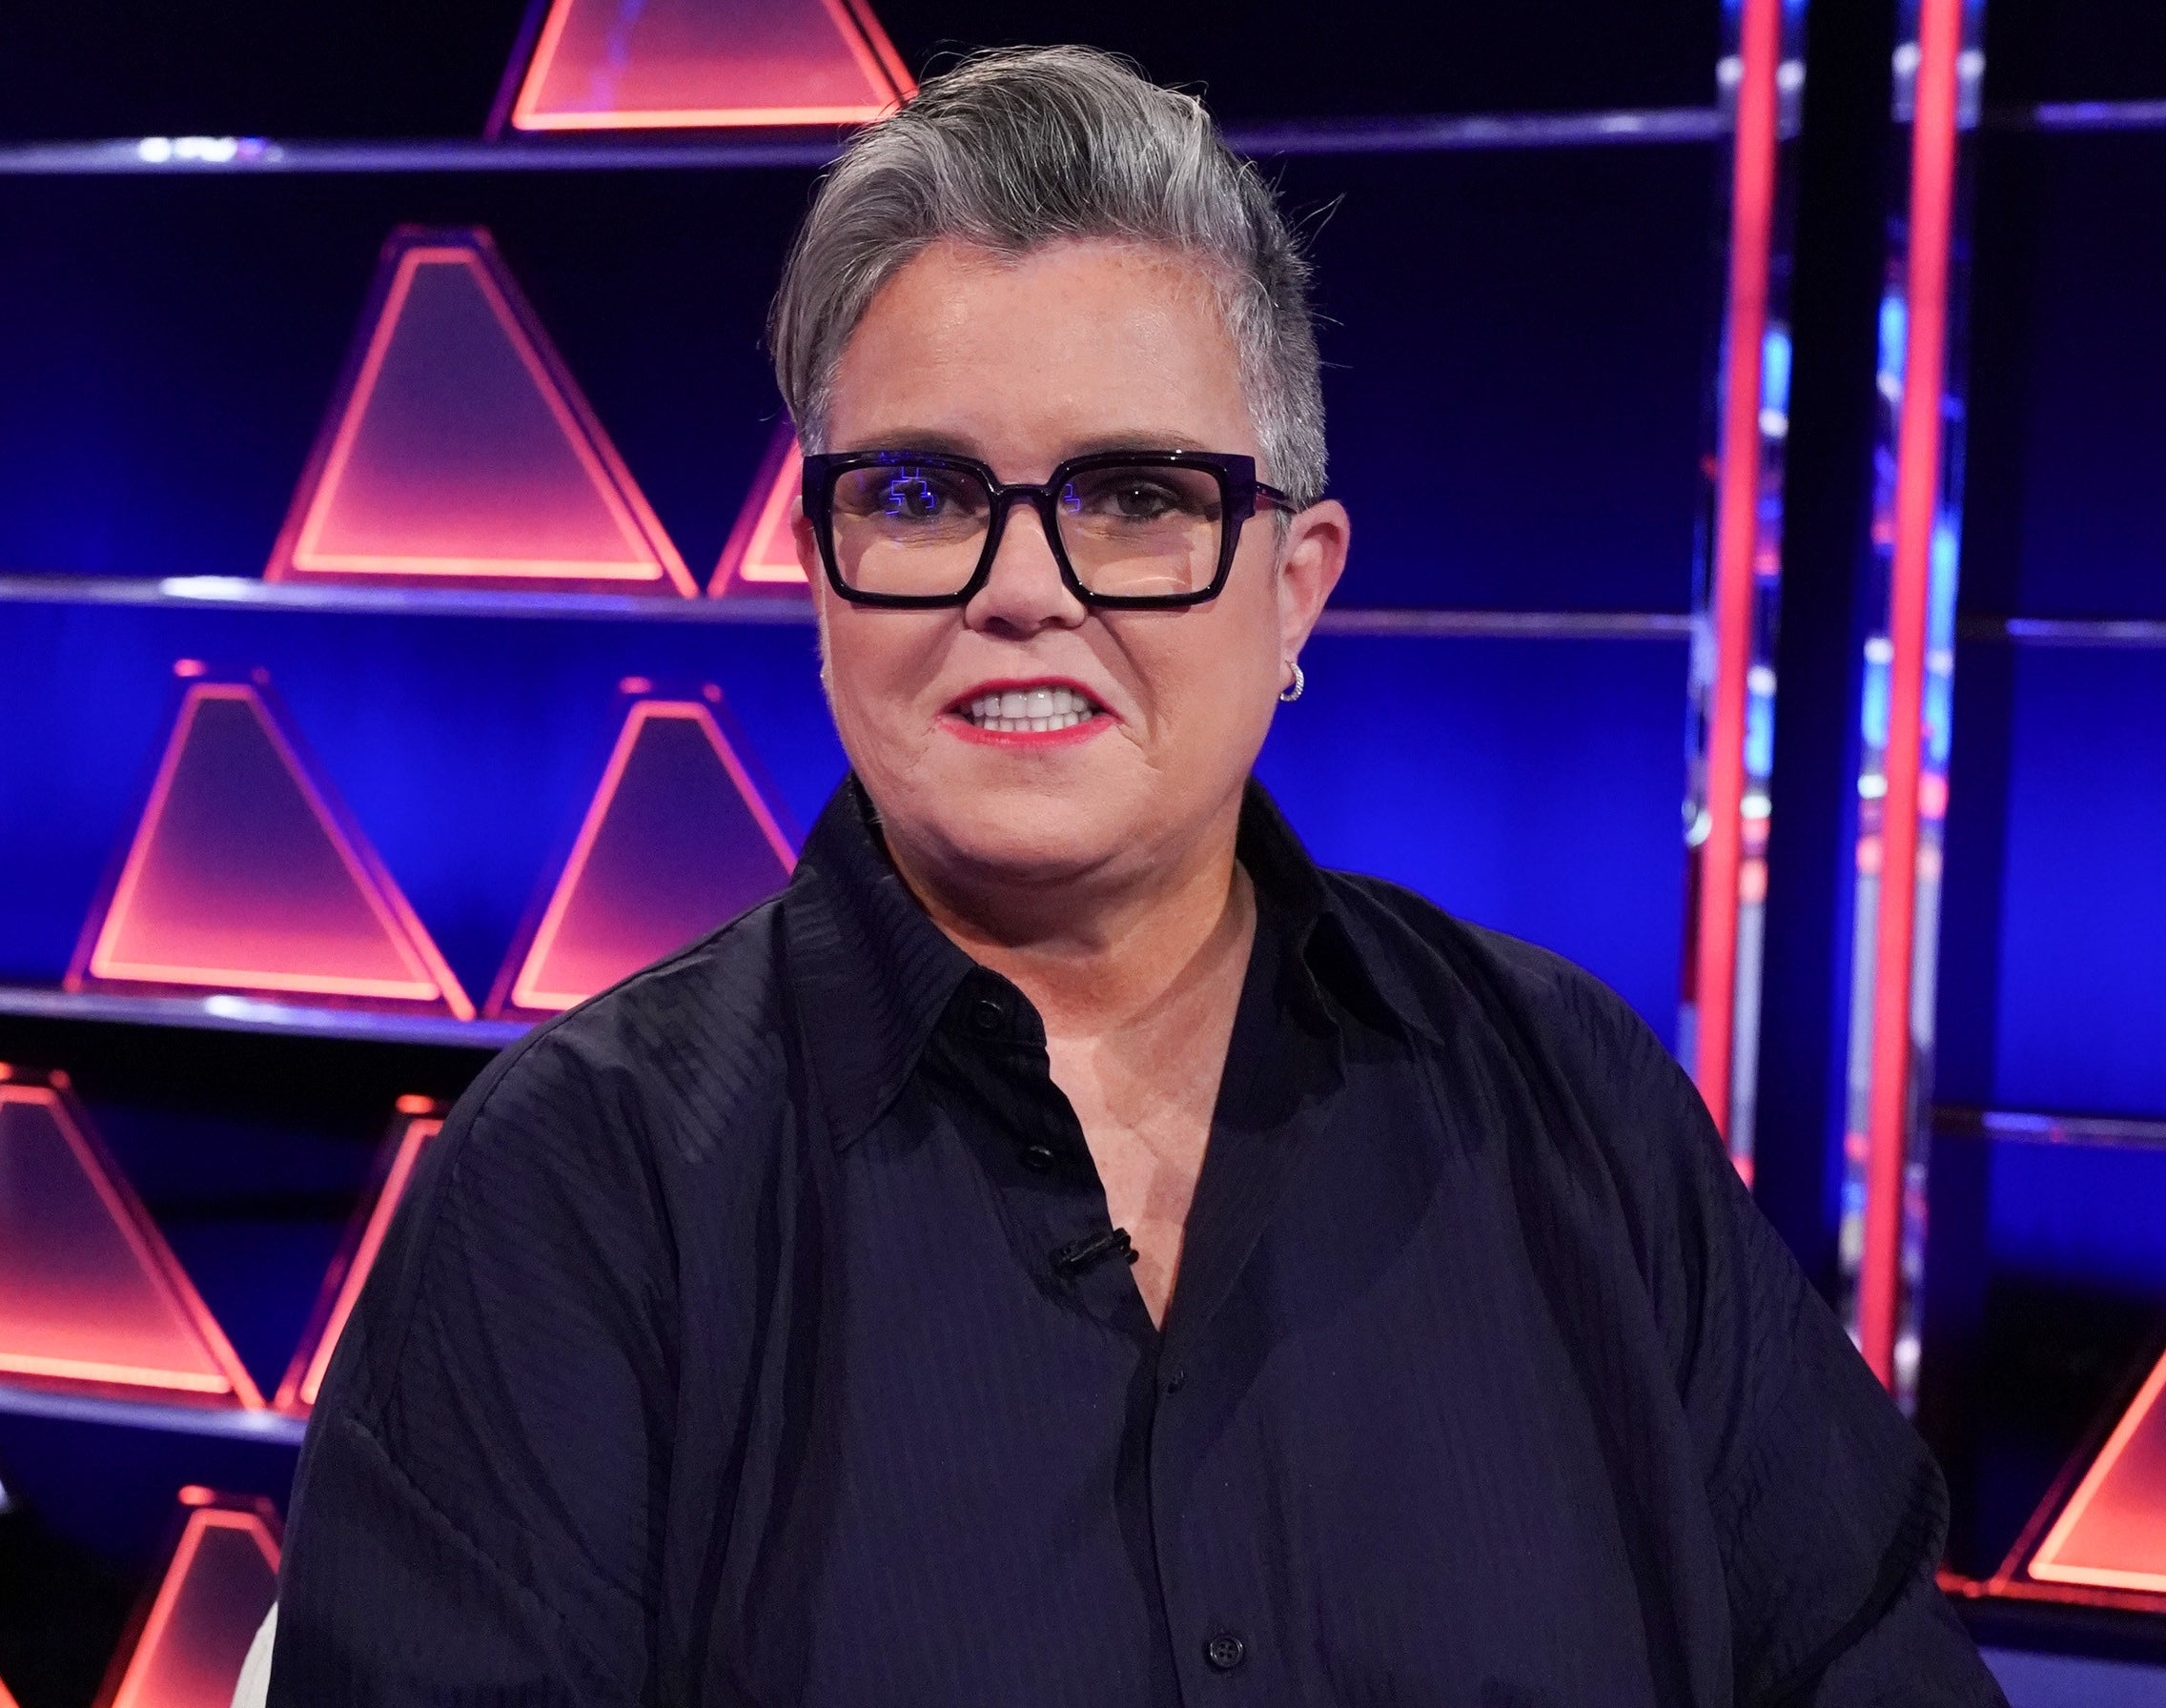 Rosie wears a black button down while smiling on the set of a game show